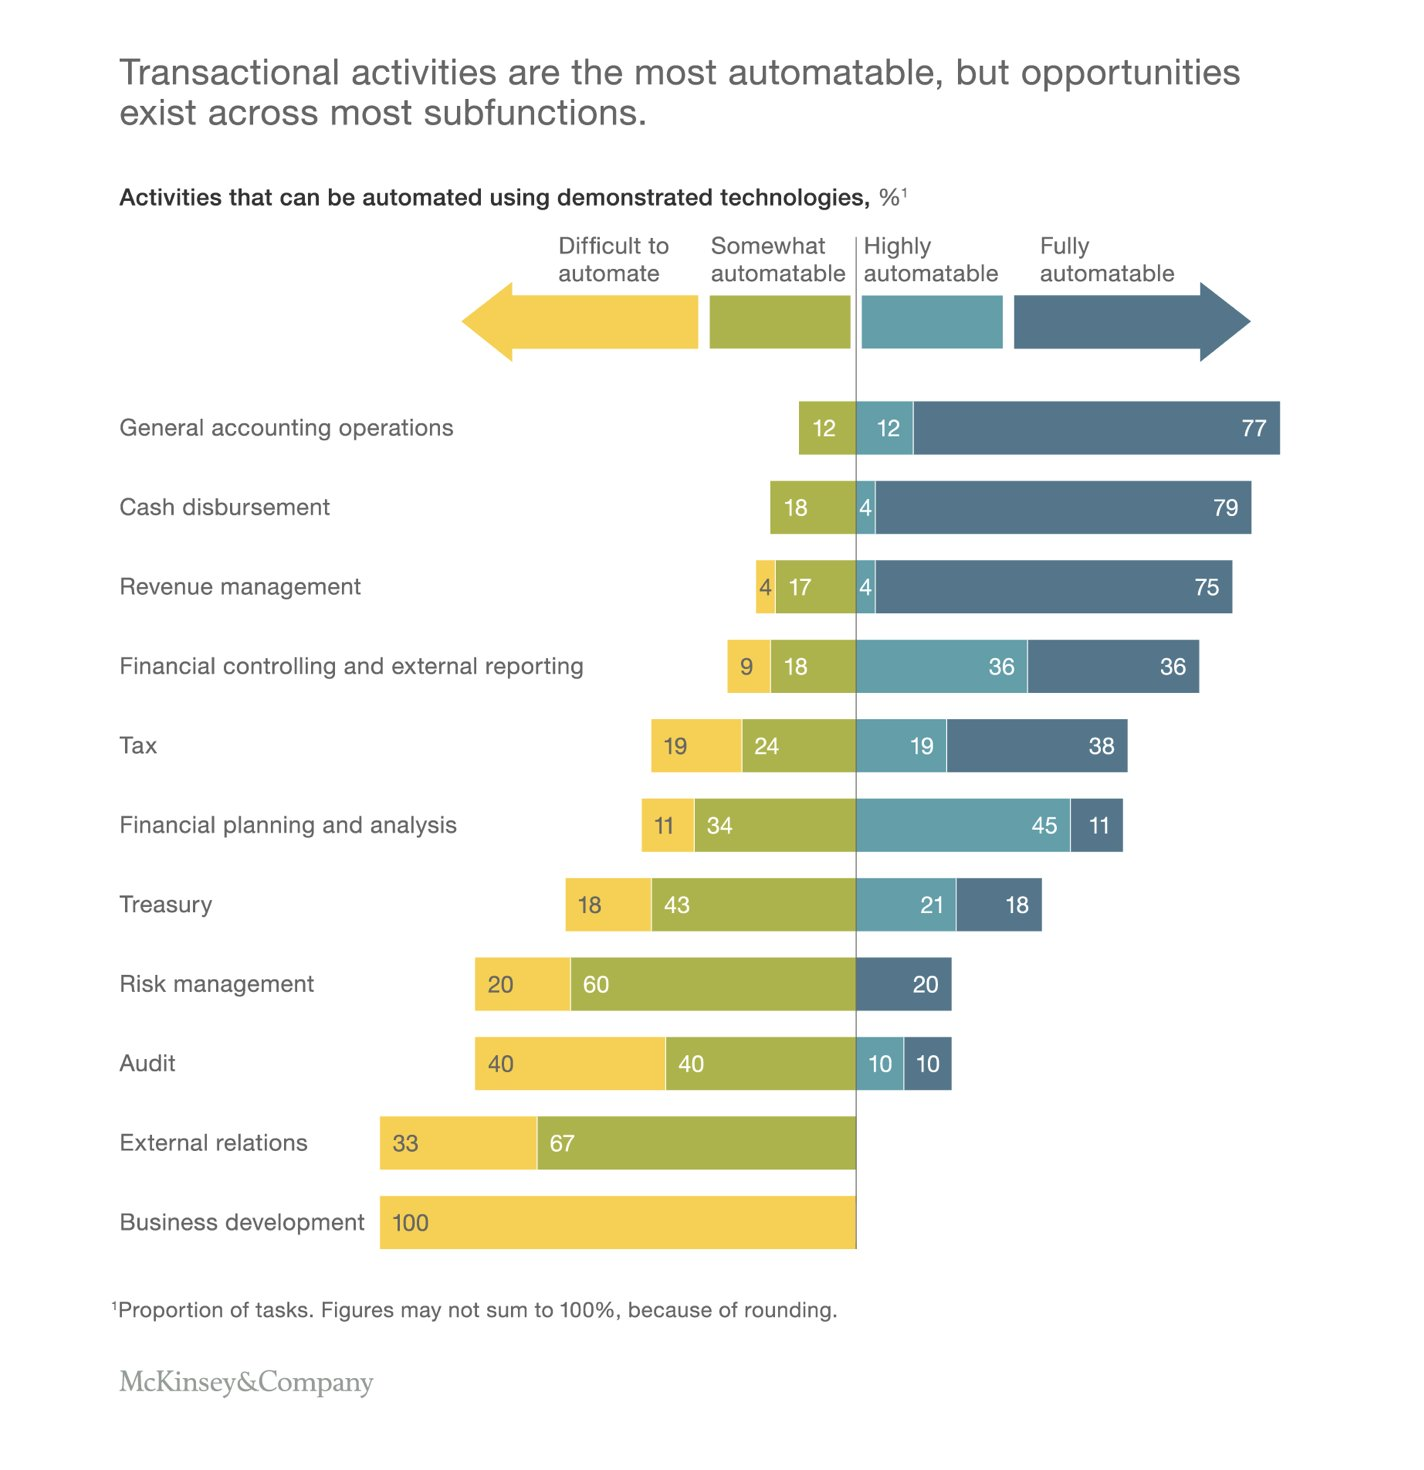 Currently demonstrated technologies can fully automate 42% of finance activities and mostly automate a further 19%.